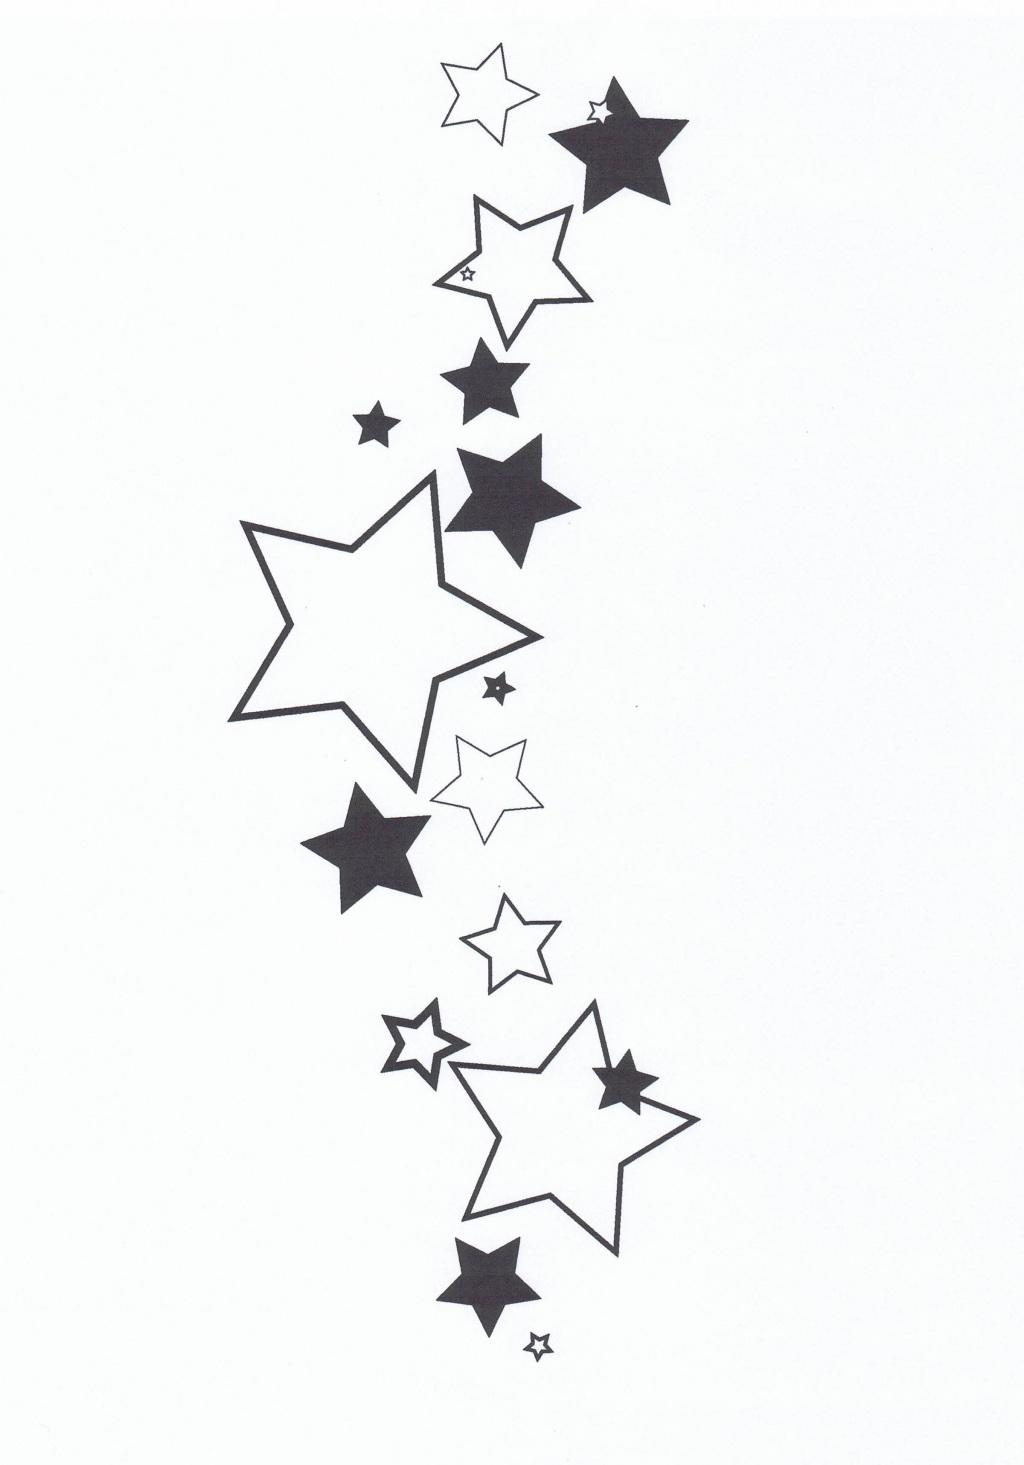 star tattoos designs ideas and meaning tattoos for you. Black Bedroom Furniture Sets. Home Design Ideas